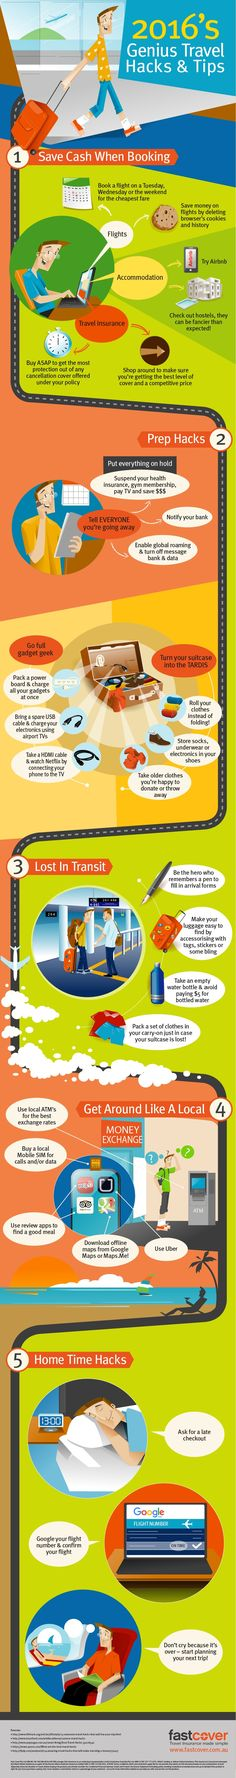 Infographic: 2016's best travel hacks and tips - Matador Network